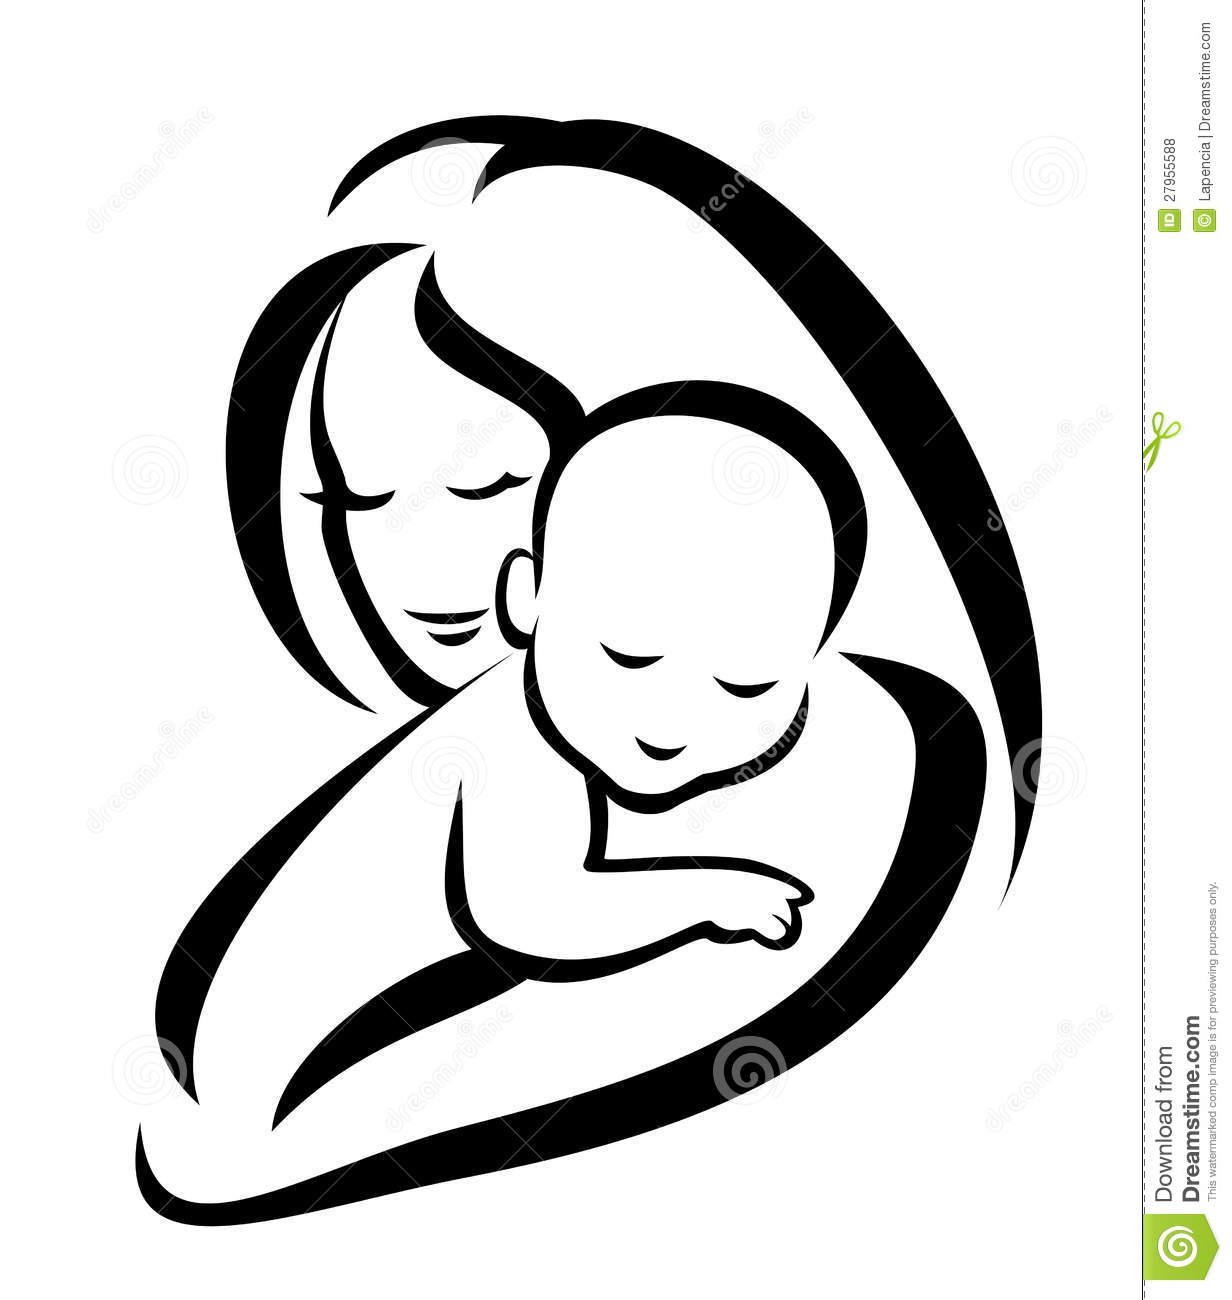 Love The Mother Child Silhouette: Mother And Baby Silhouette Royalty Free Stock Photos